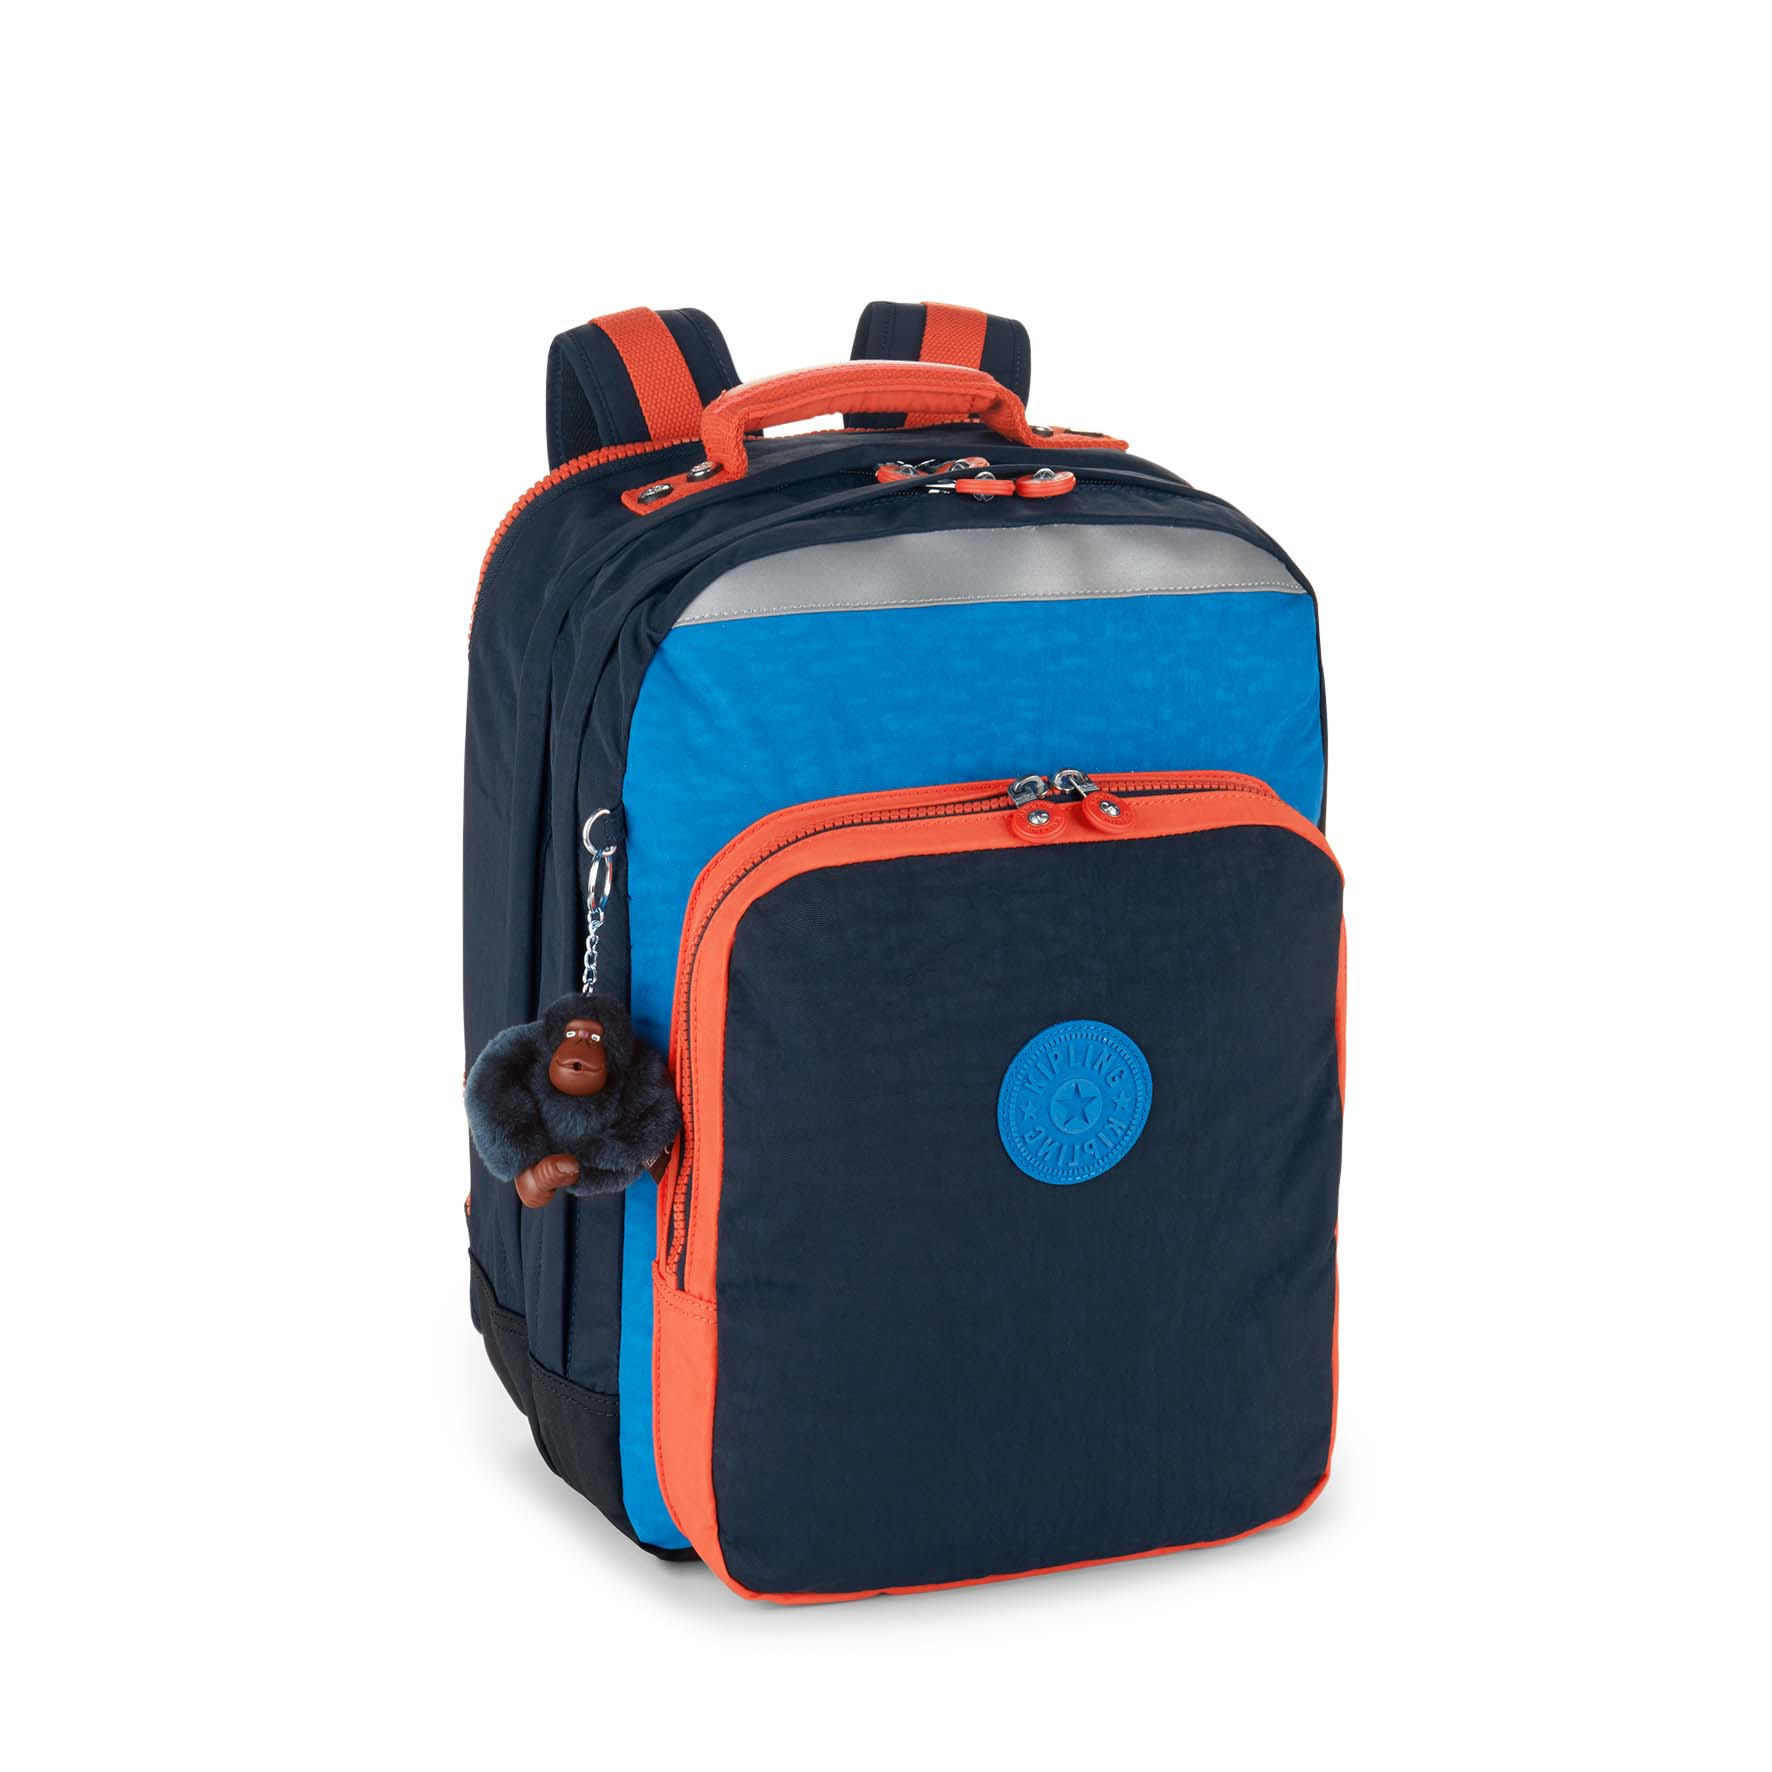 b7c50702a Kipling Manary Backpack With Laptop Protection- Fenix Toulouse Handball